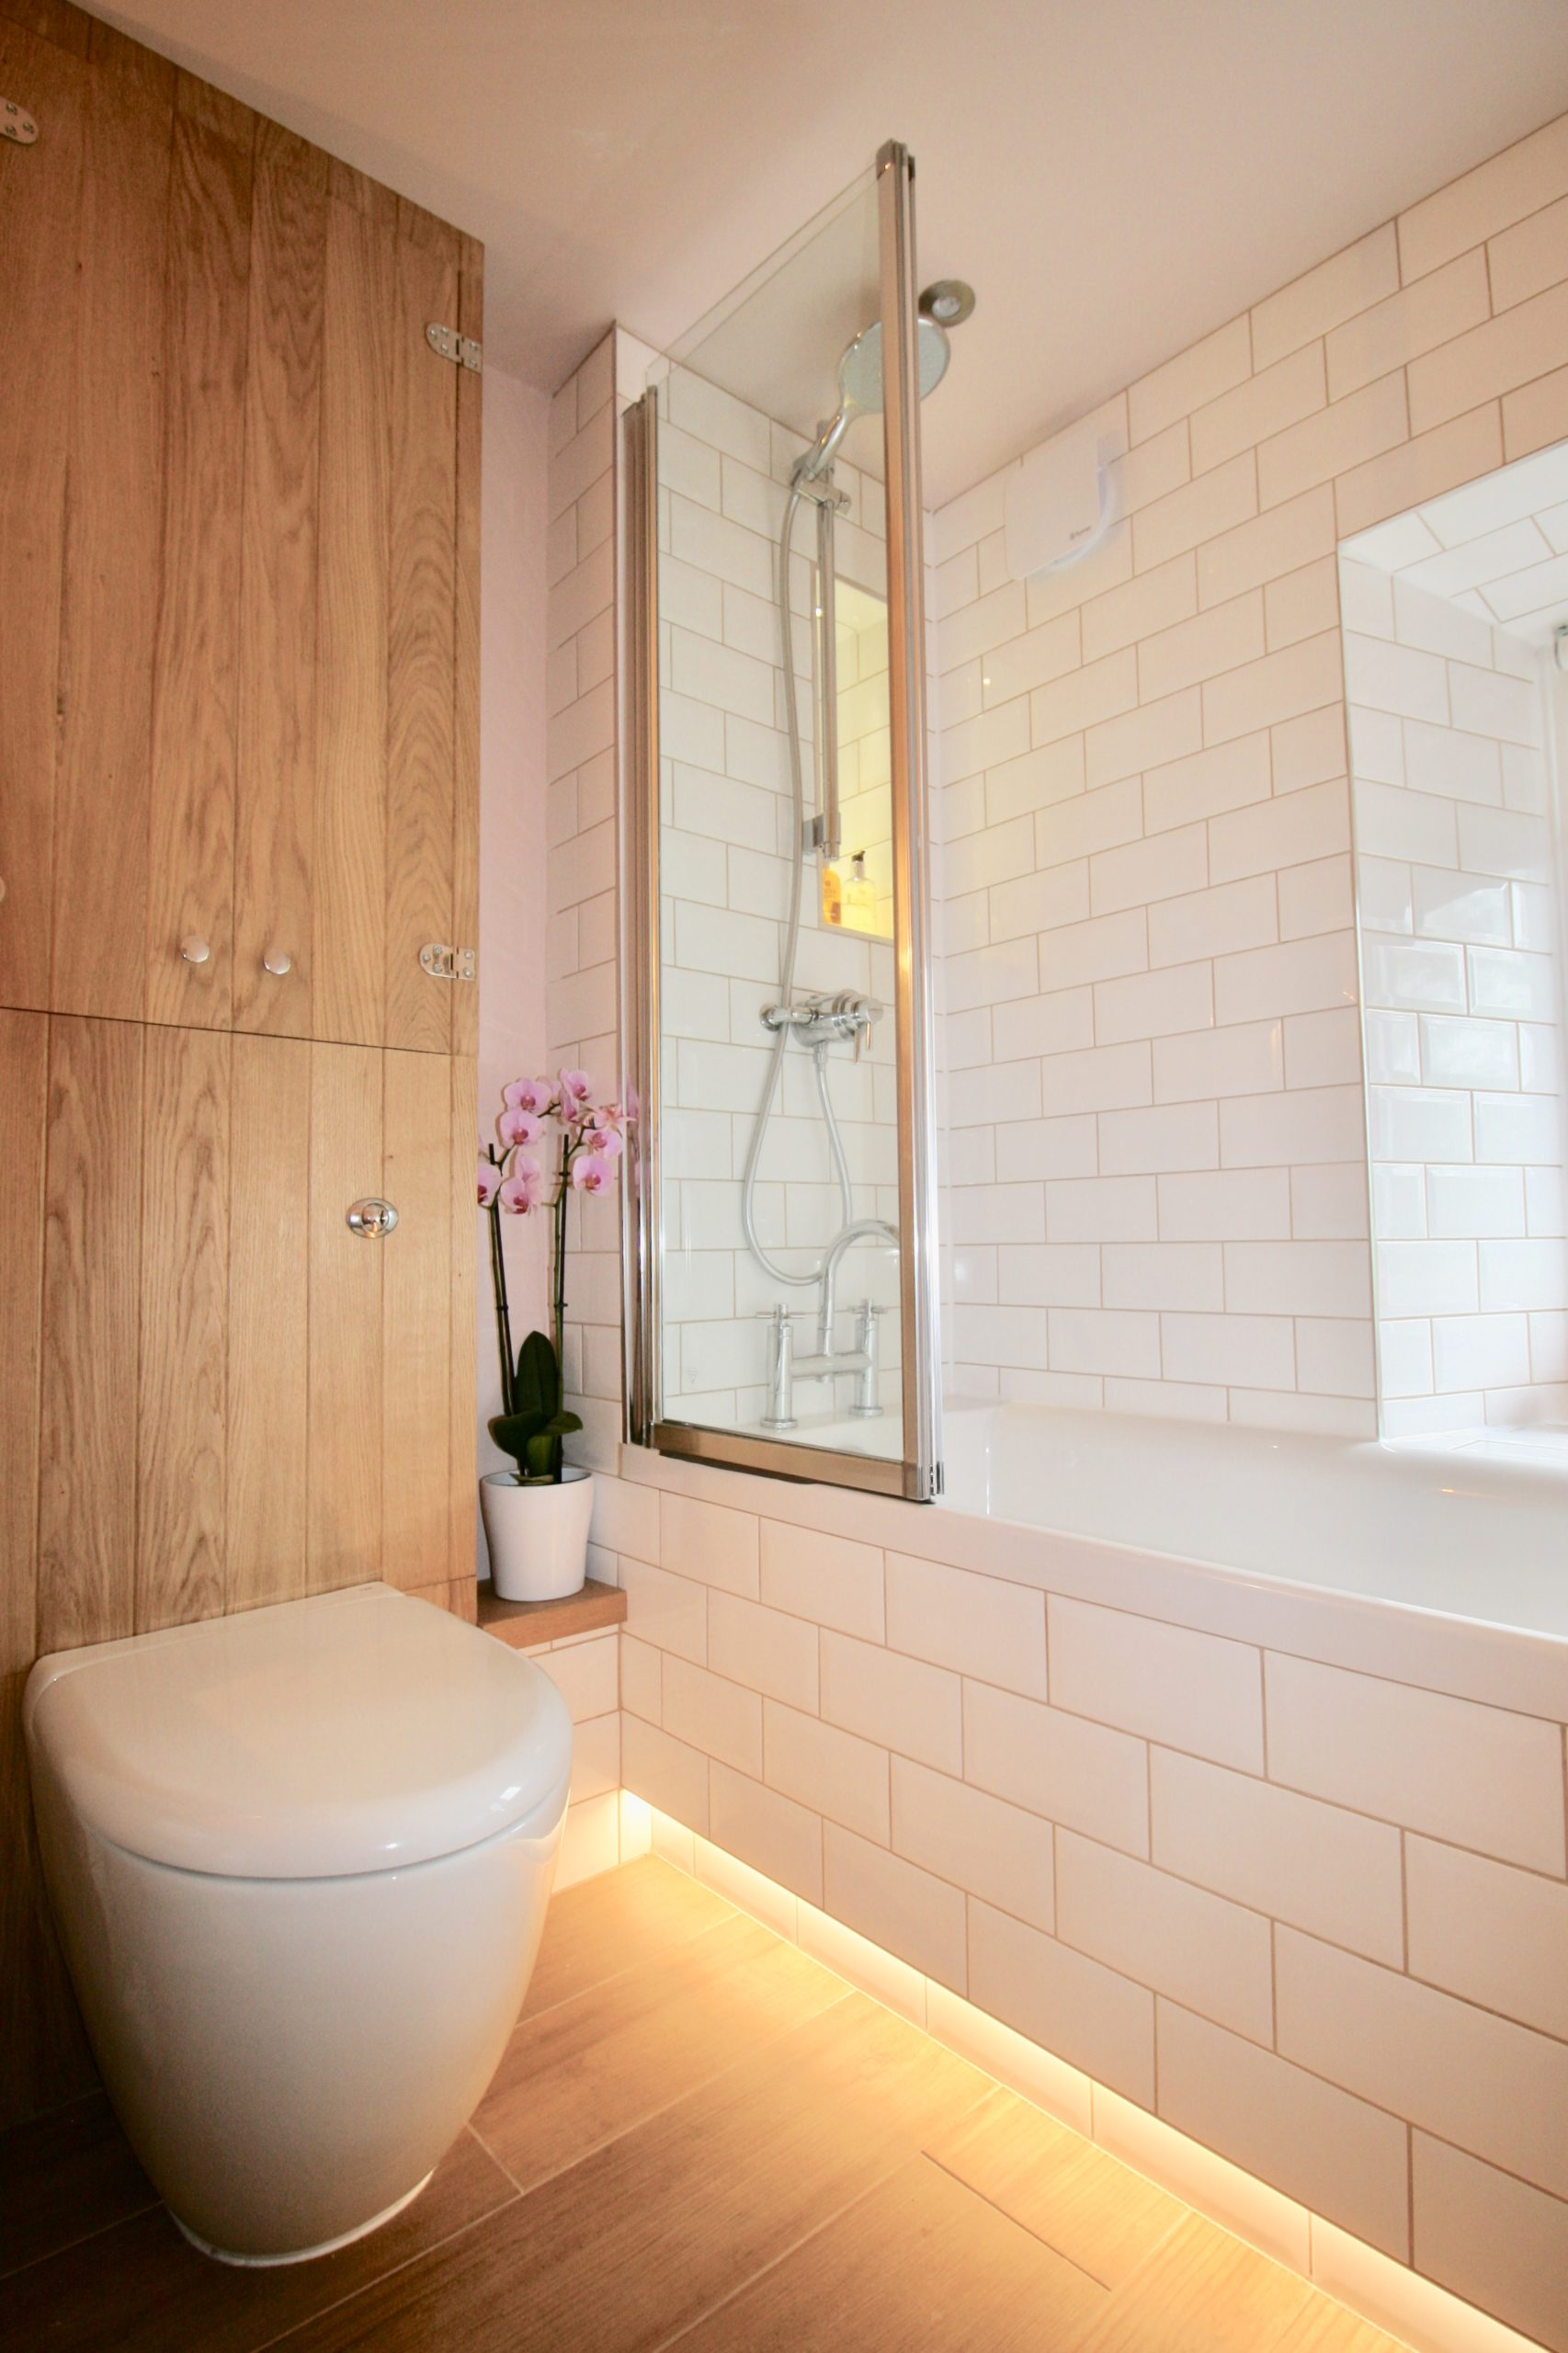 Bathrooms - Grohe 160mm shower riser kit and bifold shower screen in bathroom designed by Amelia Wilson Interiors